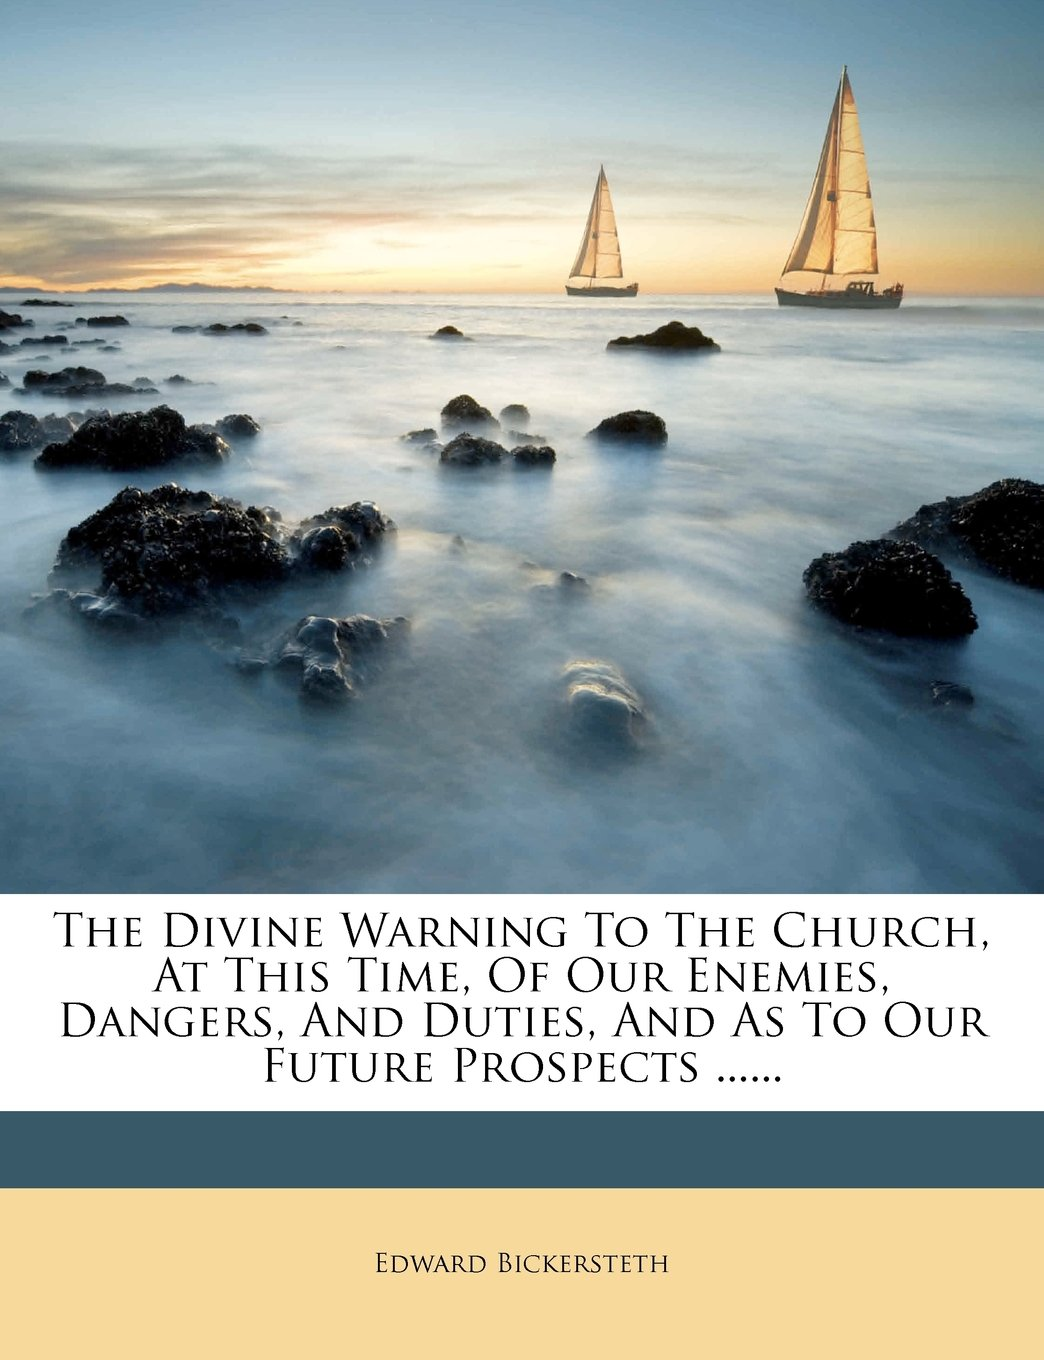 The Divine Warning To The Church, At This Time, Of Our Enemies, Dangers, And Duties, And As To Our Future Prospects ...... ebook